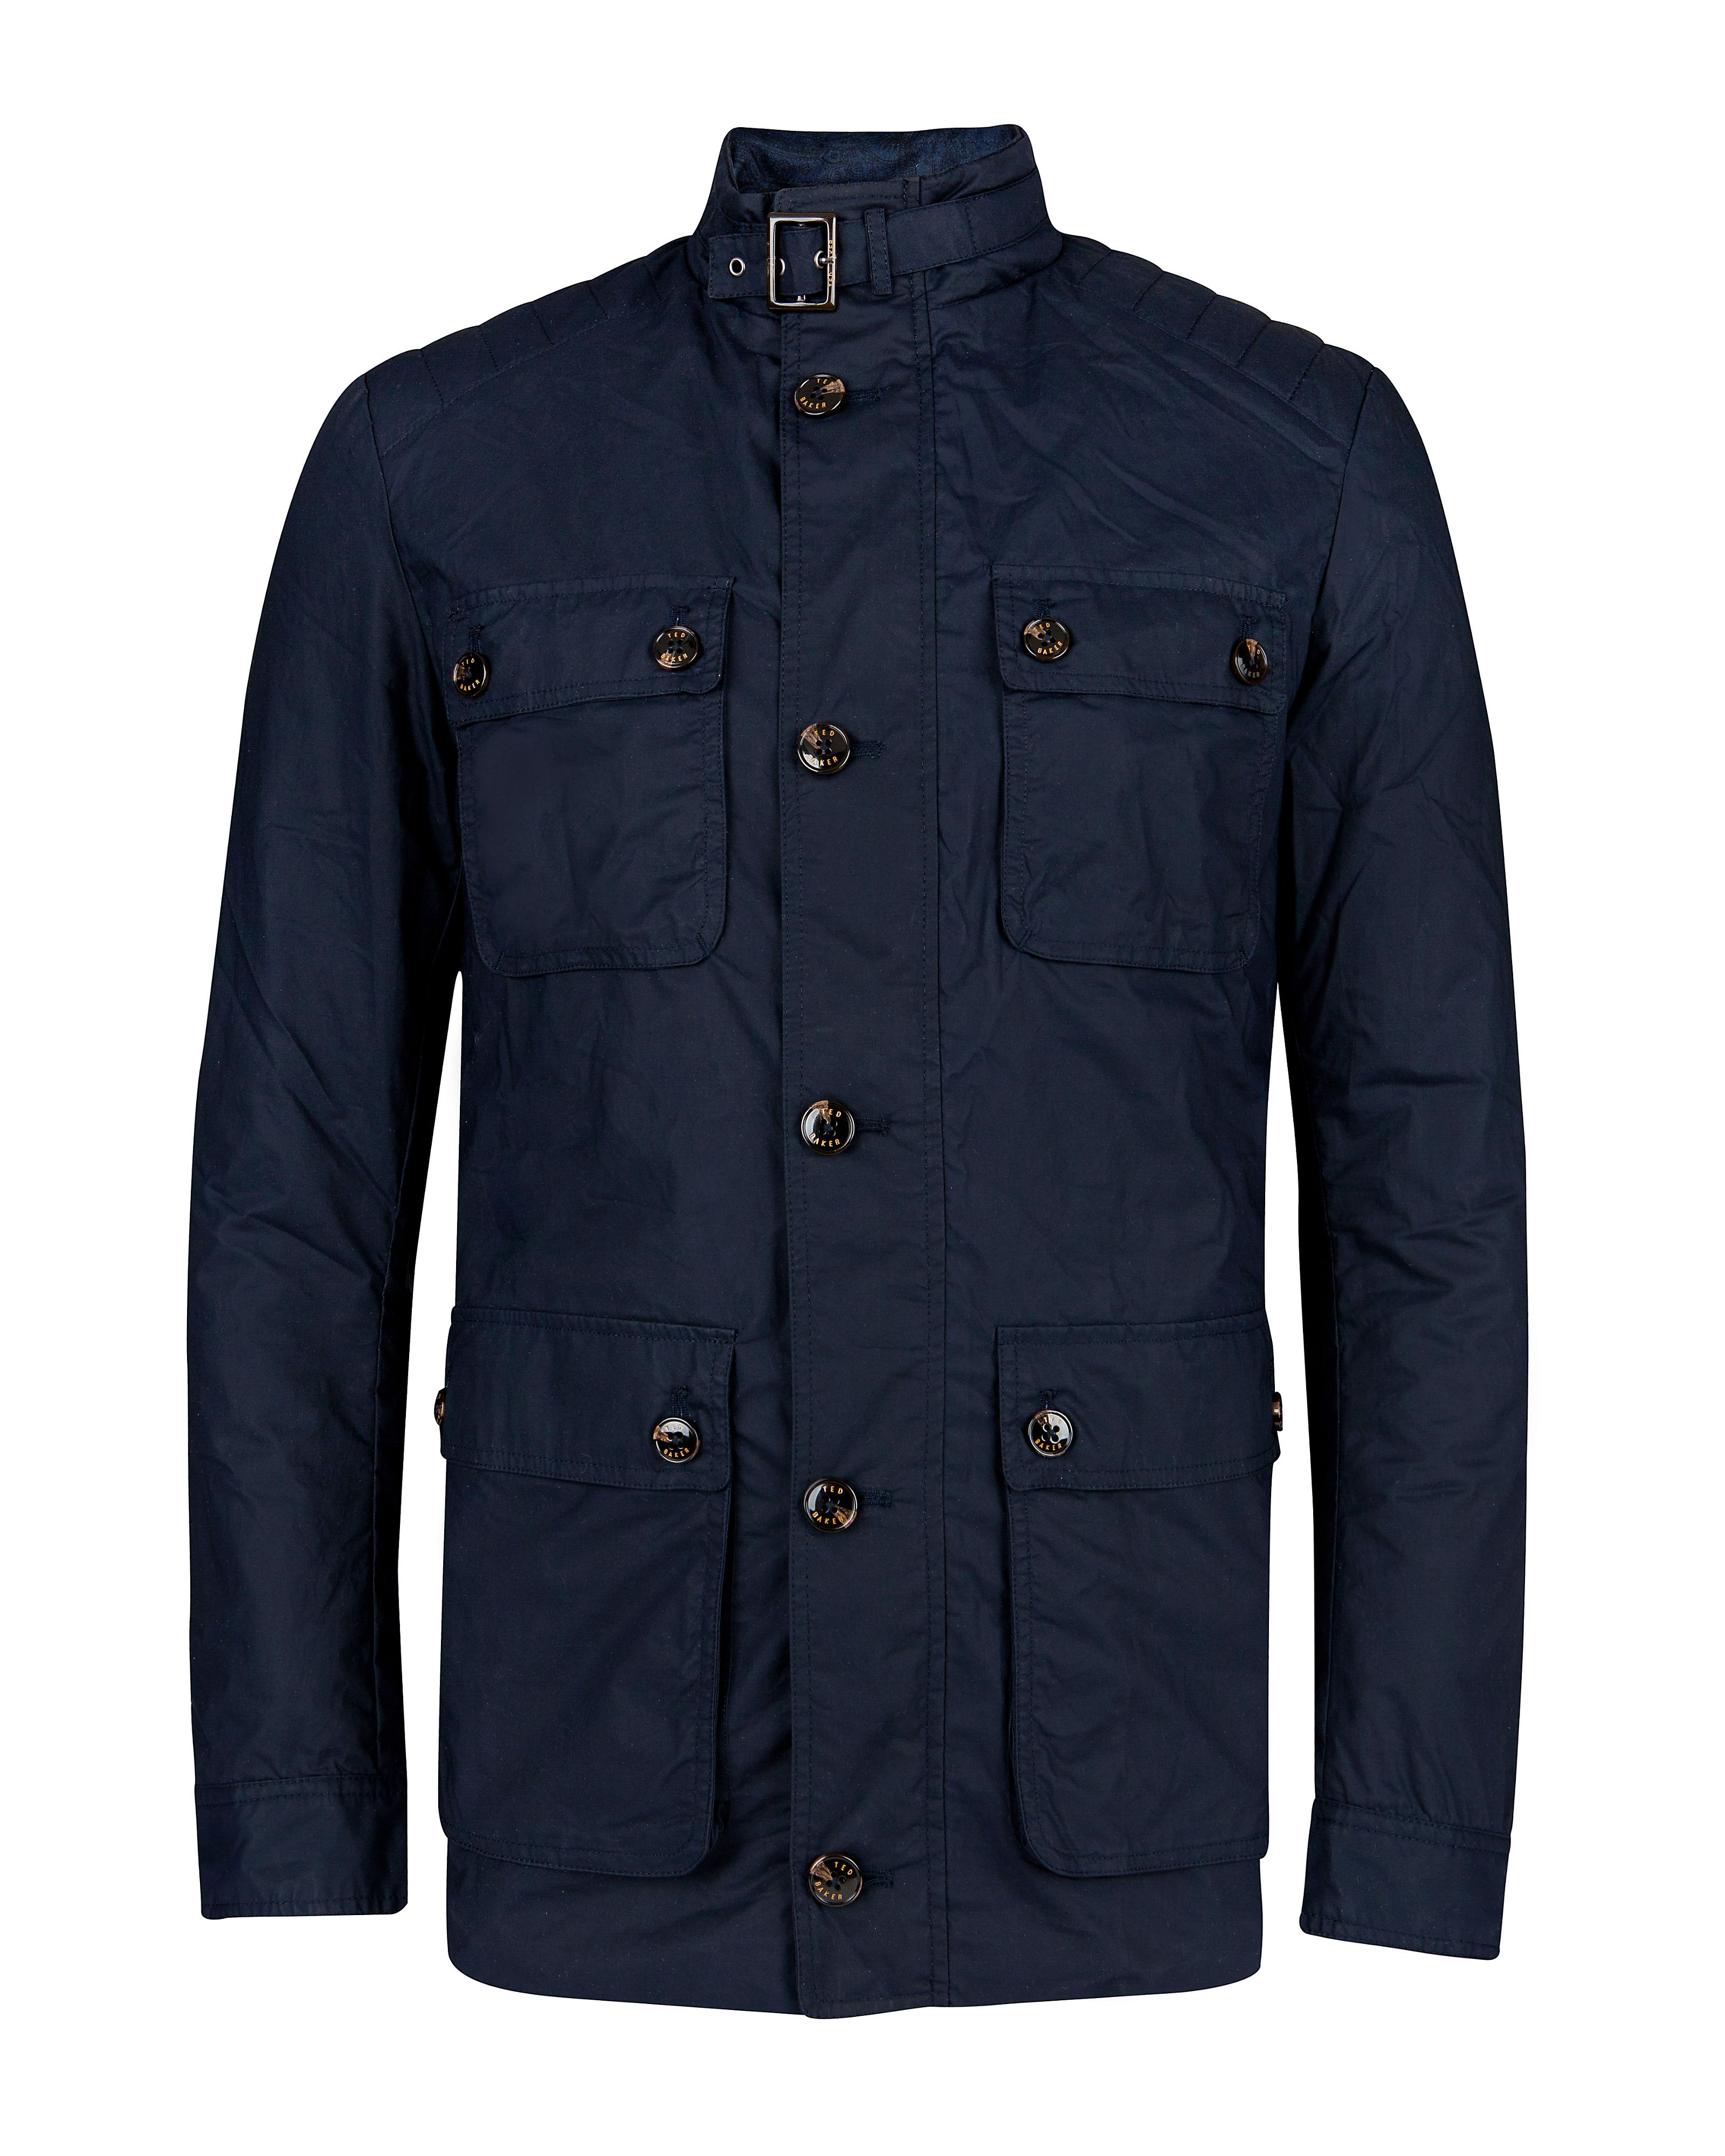 Orynew cotton wax coat